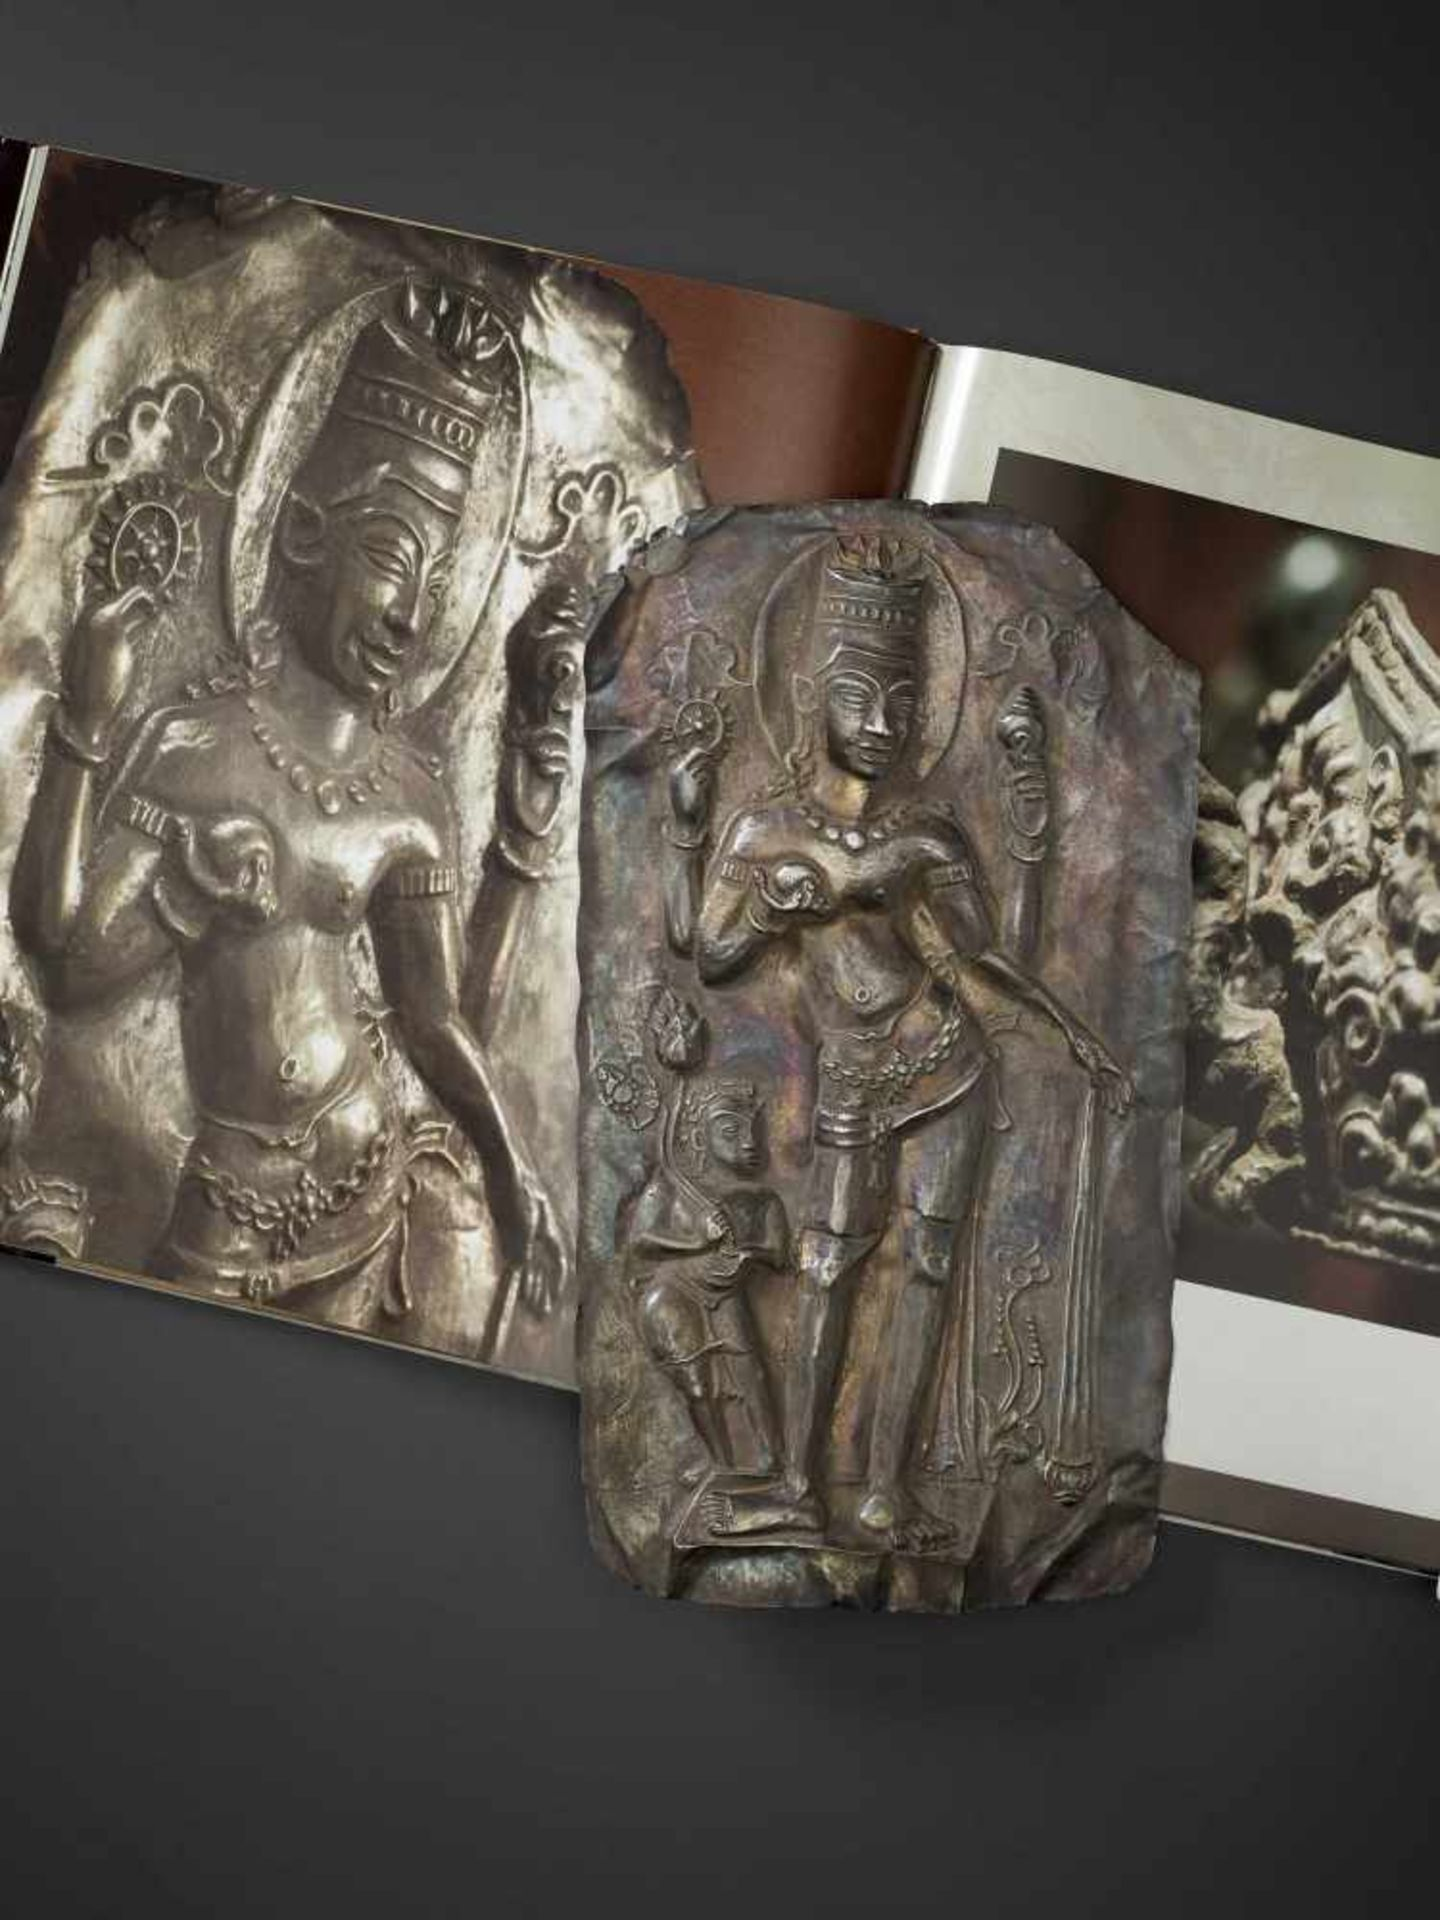 A LARGE CHAM SILVER REPOUSSÉ PLAQUE DEPICTING VISHNU AND CHILD - Bild 2 aus 5